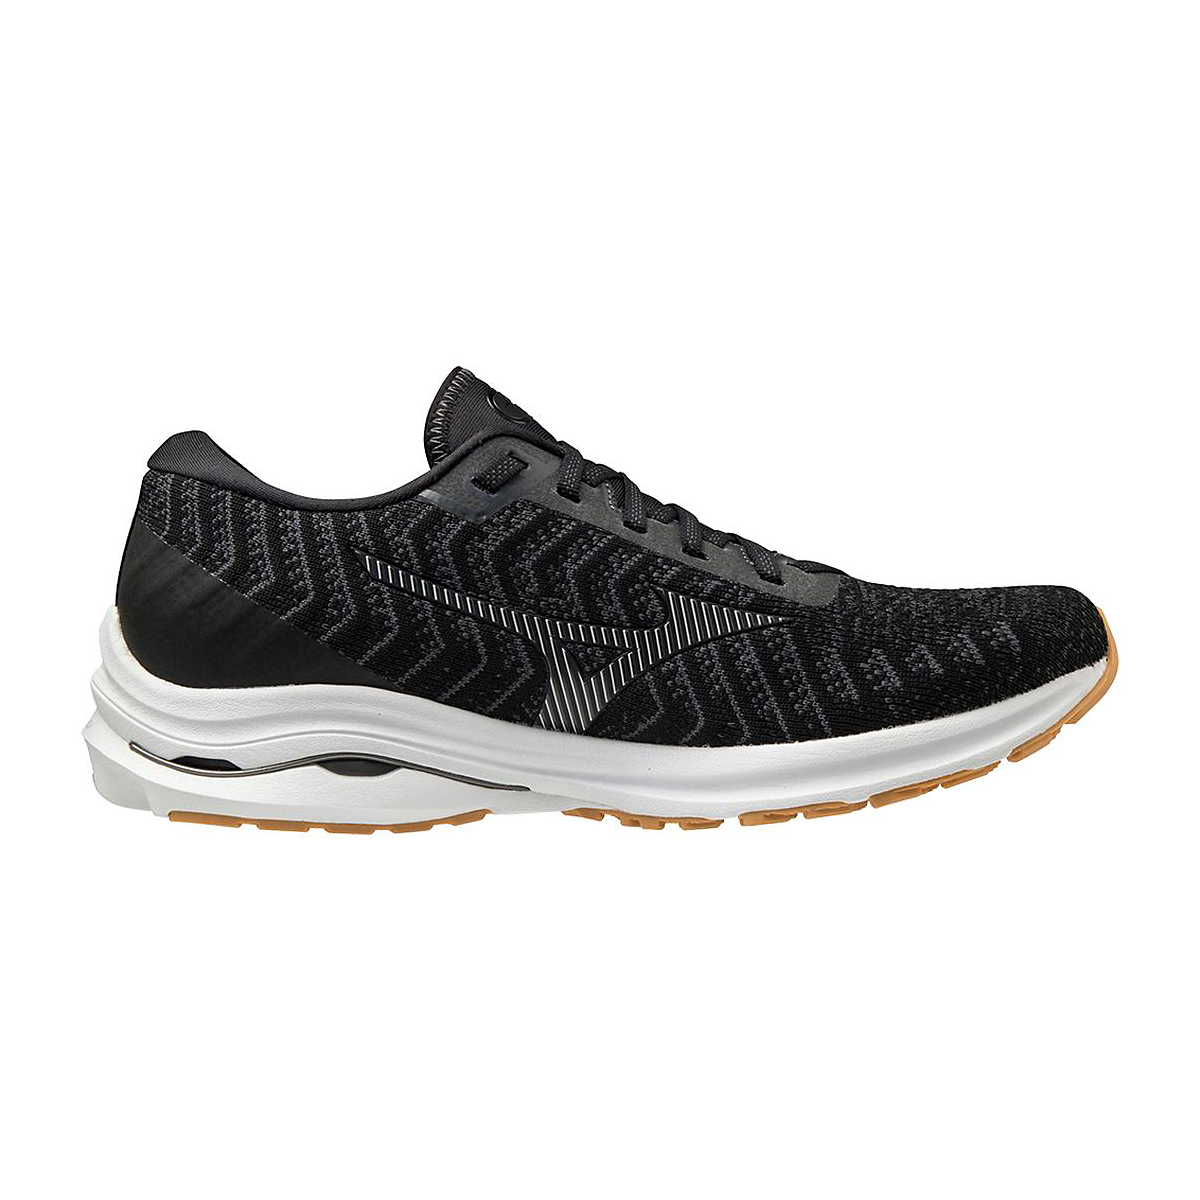 Men's Mizuno Wave Rider 24 Waveknit Running Shoe - Color: Black/Dark Shadow  - Size: 8 - Width: Regular, Black/Dark Shadow, large, image 1